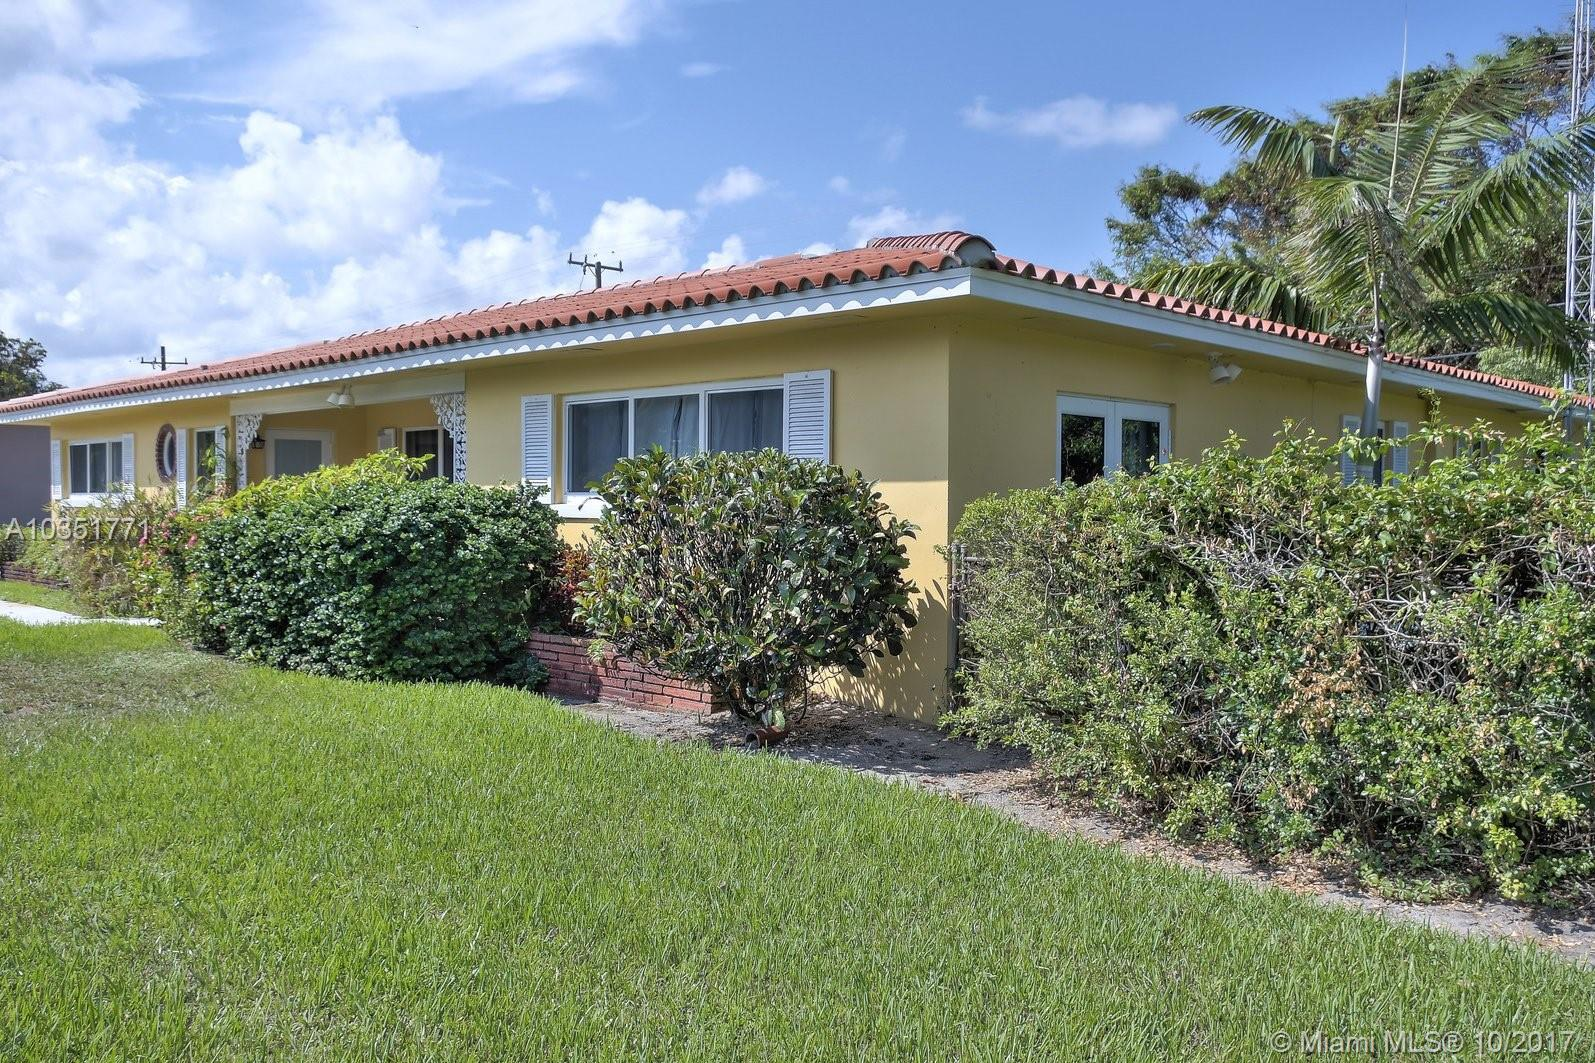 317 Edmor Rd, West Palm Beach, FL 33405